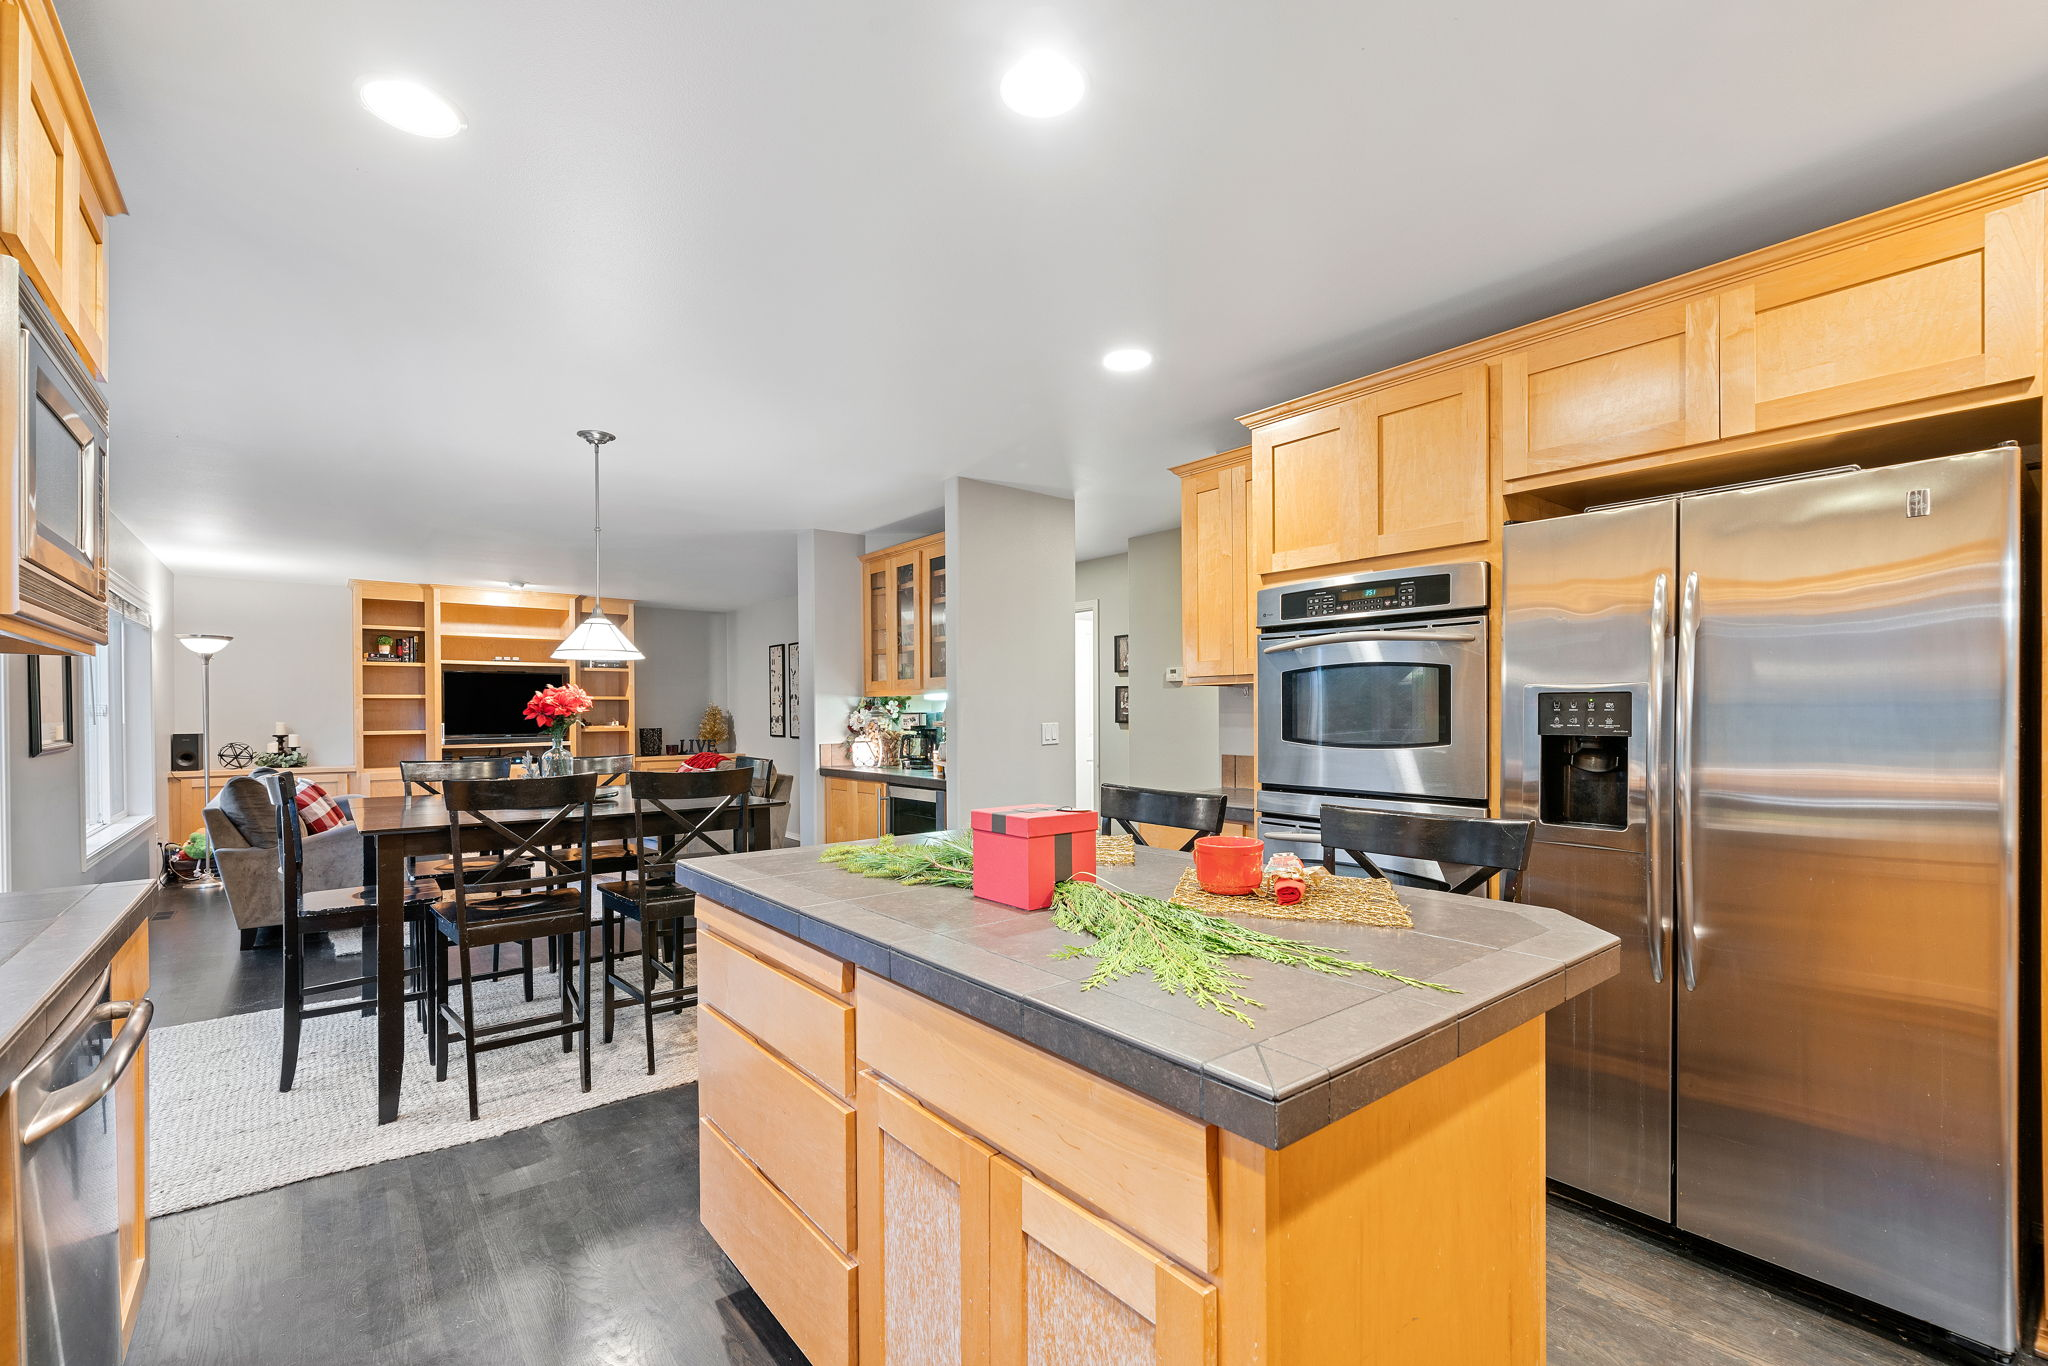 Kitchen blends into secondary dining and large family room. Fantastic for family gatherings!